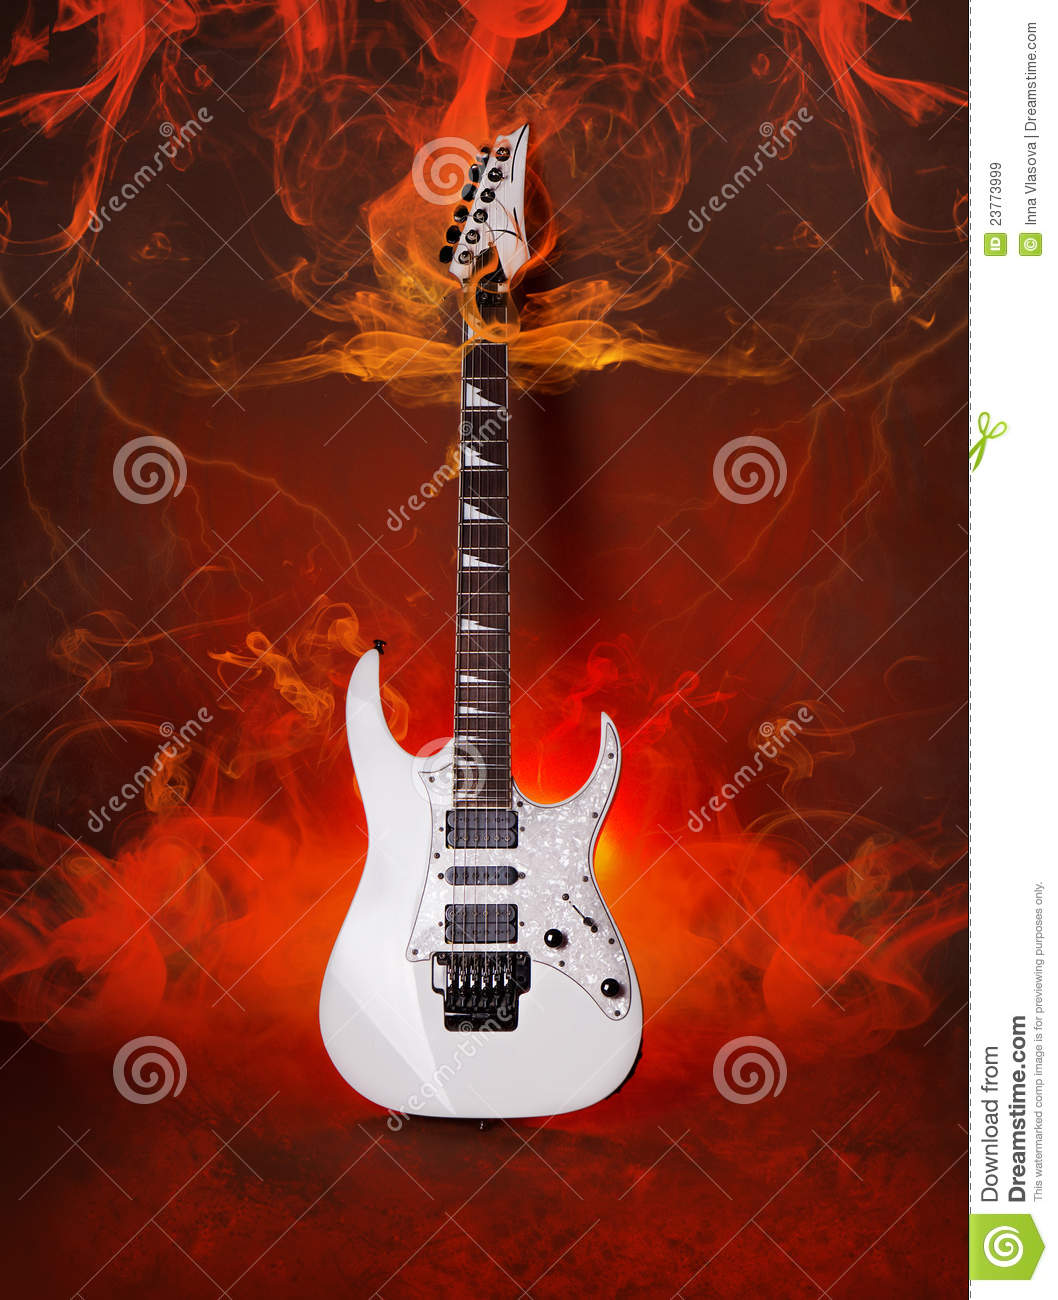 Rock Guitar In Flames Of Fire Royalty Free Stock Images ...